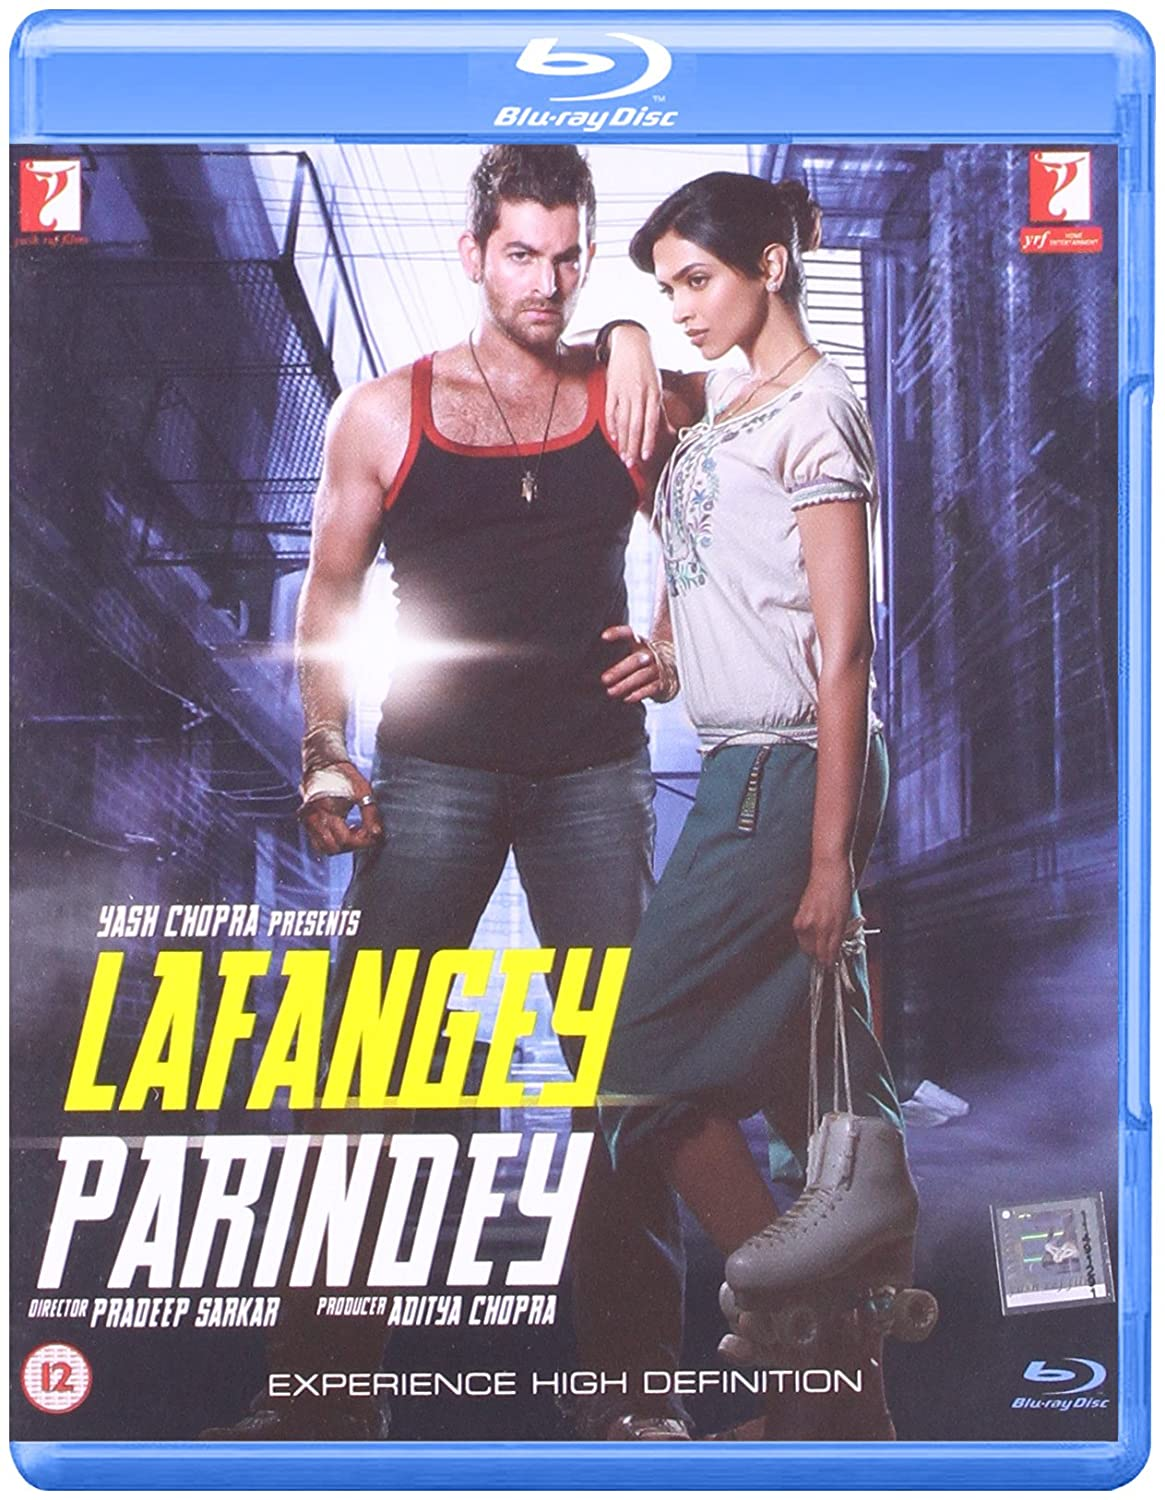 Lafangey Parindey (2010) BD50  Untouched BluRay YrF DRs | ISO | 33 GB |